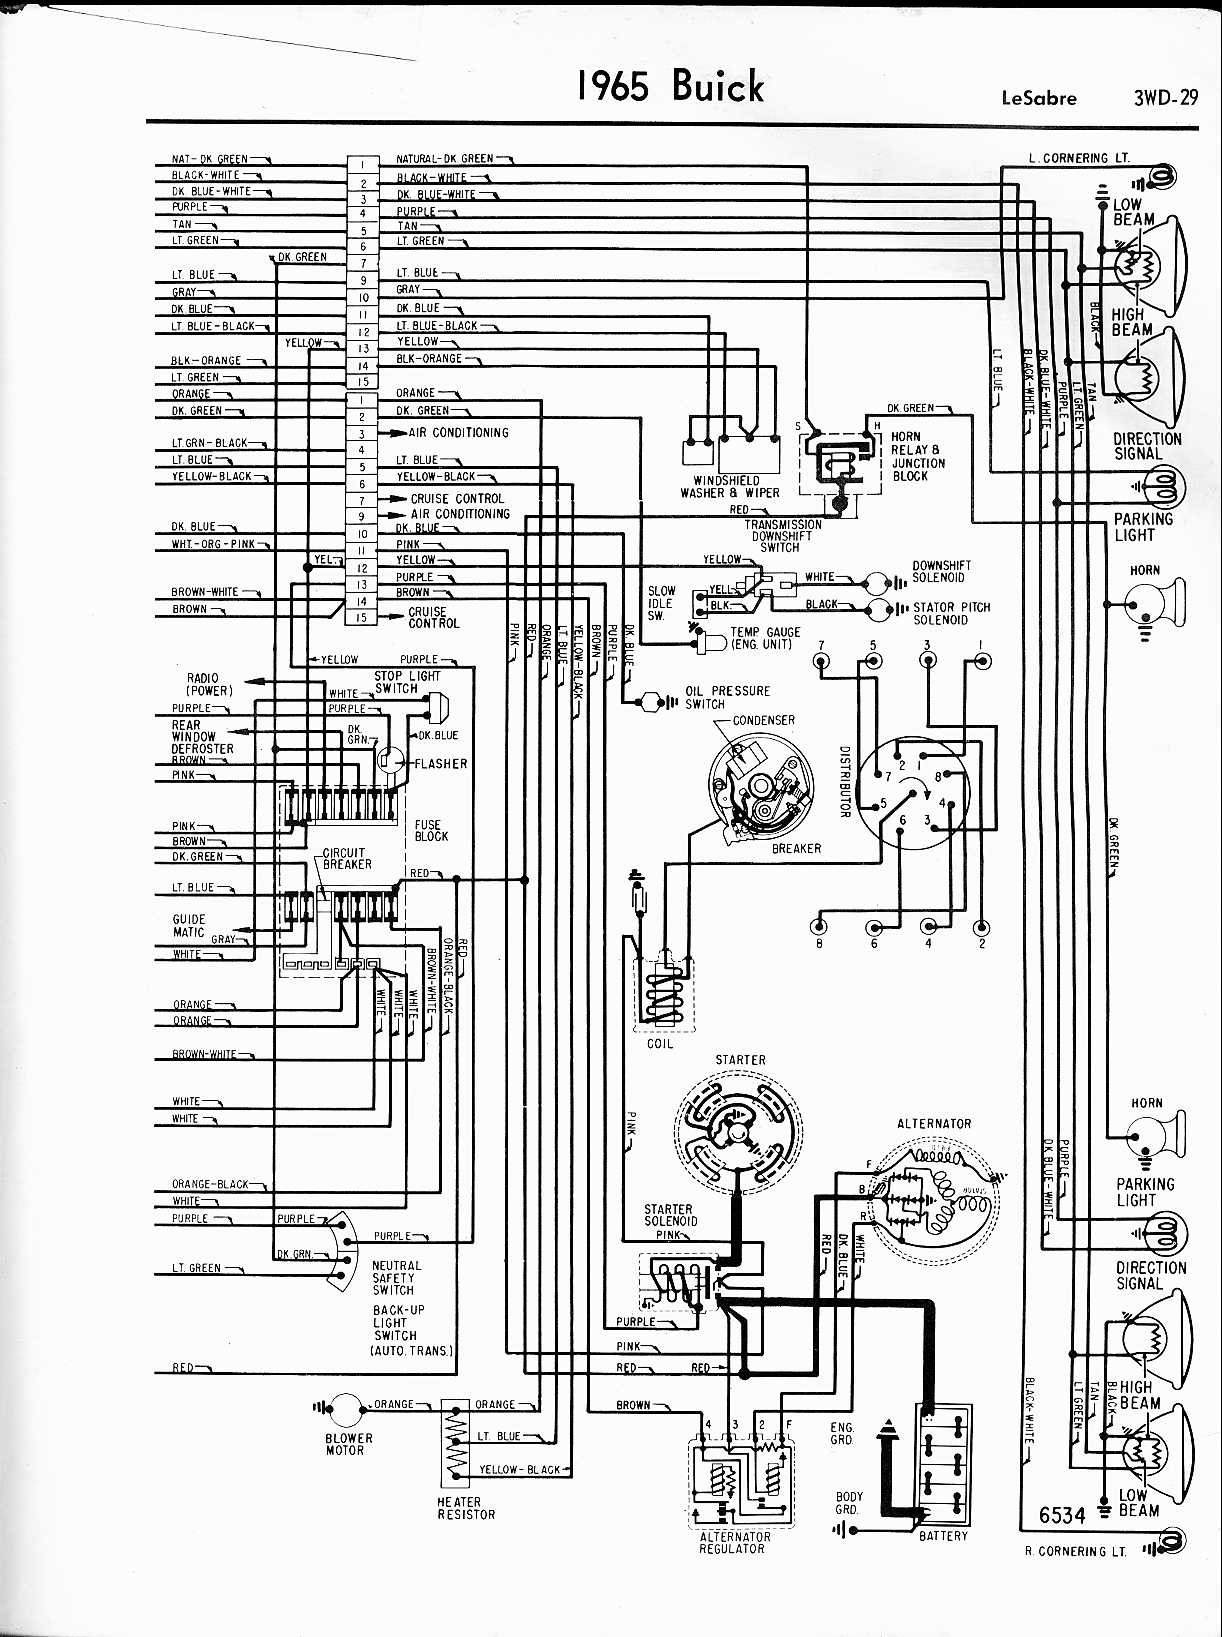 1972 corvette wiper wiring diagram on 1959 corvette starter wiring